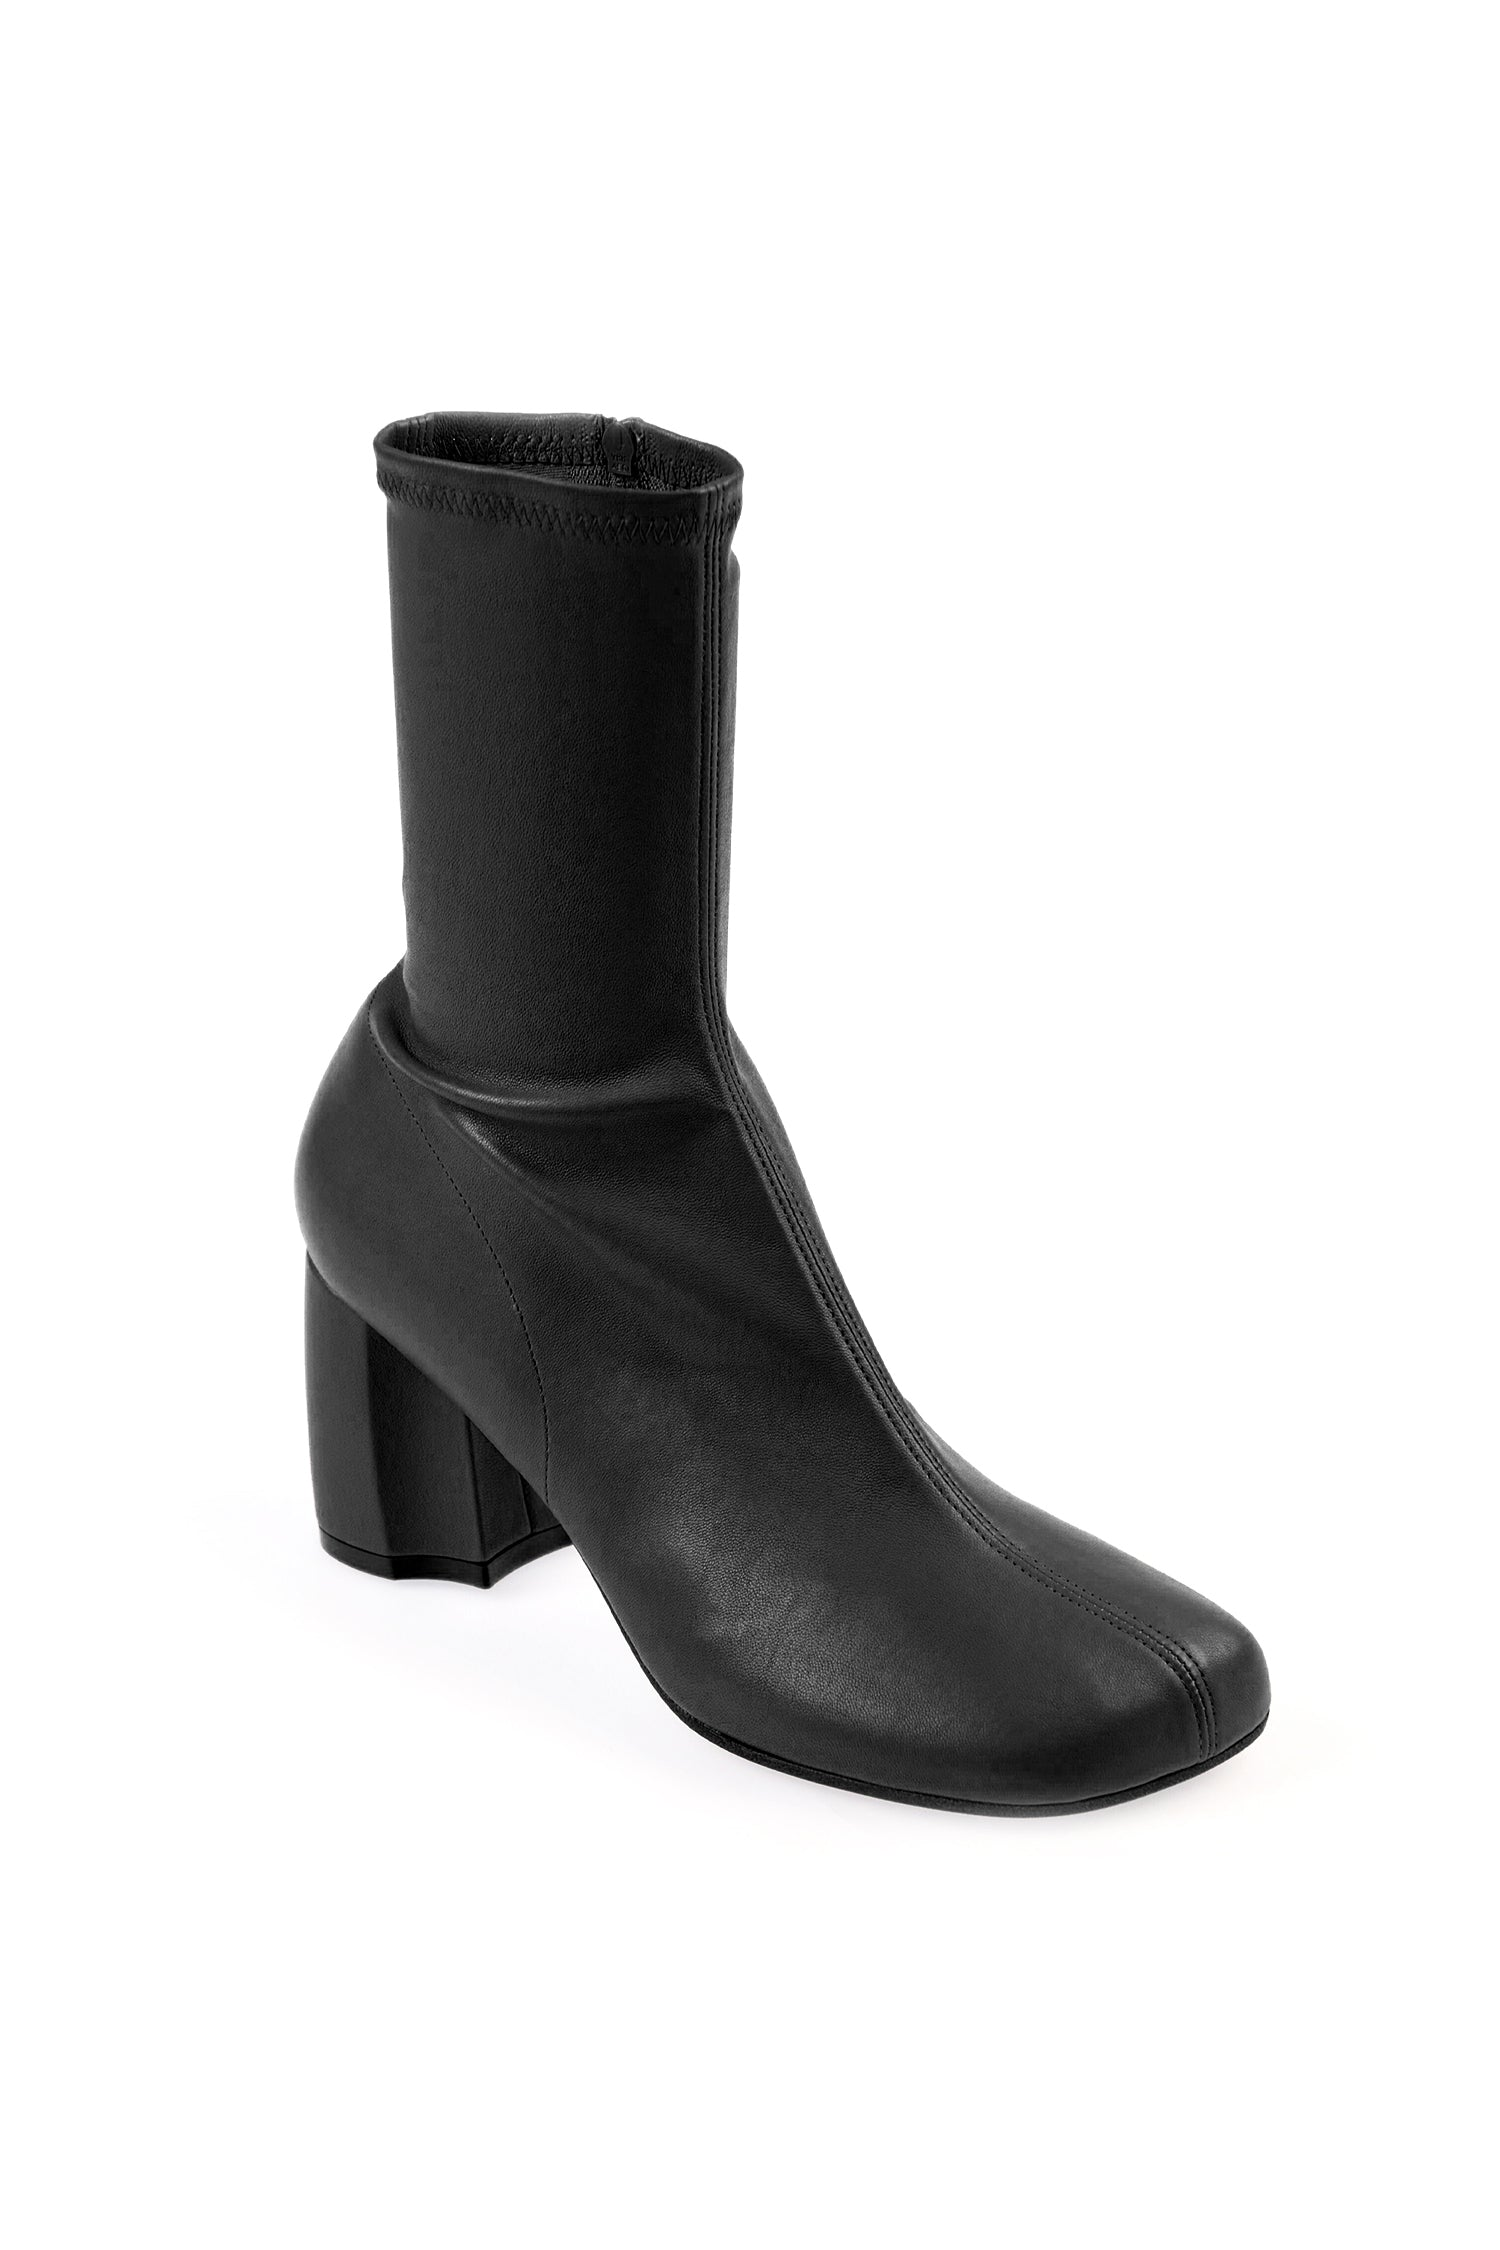 SLIM ANKLE BOOT